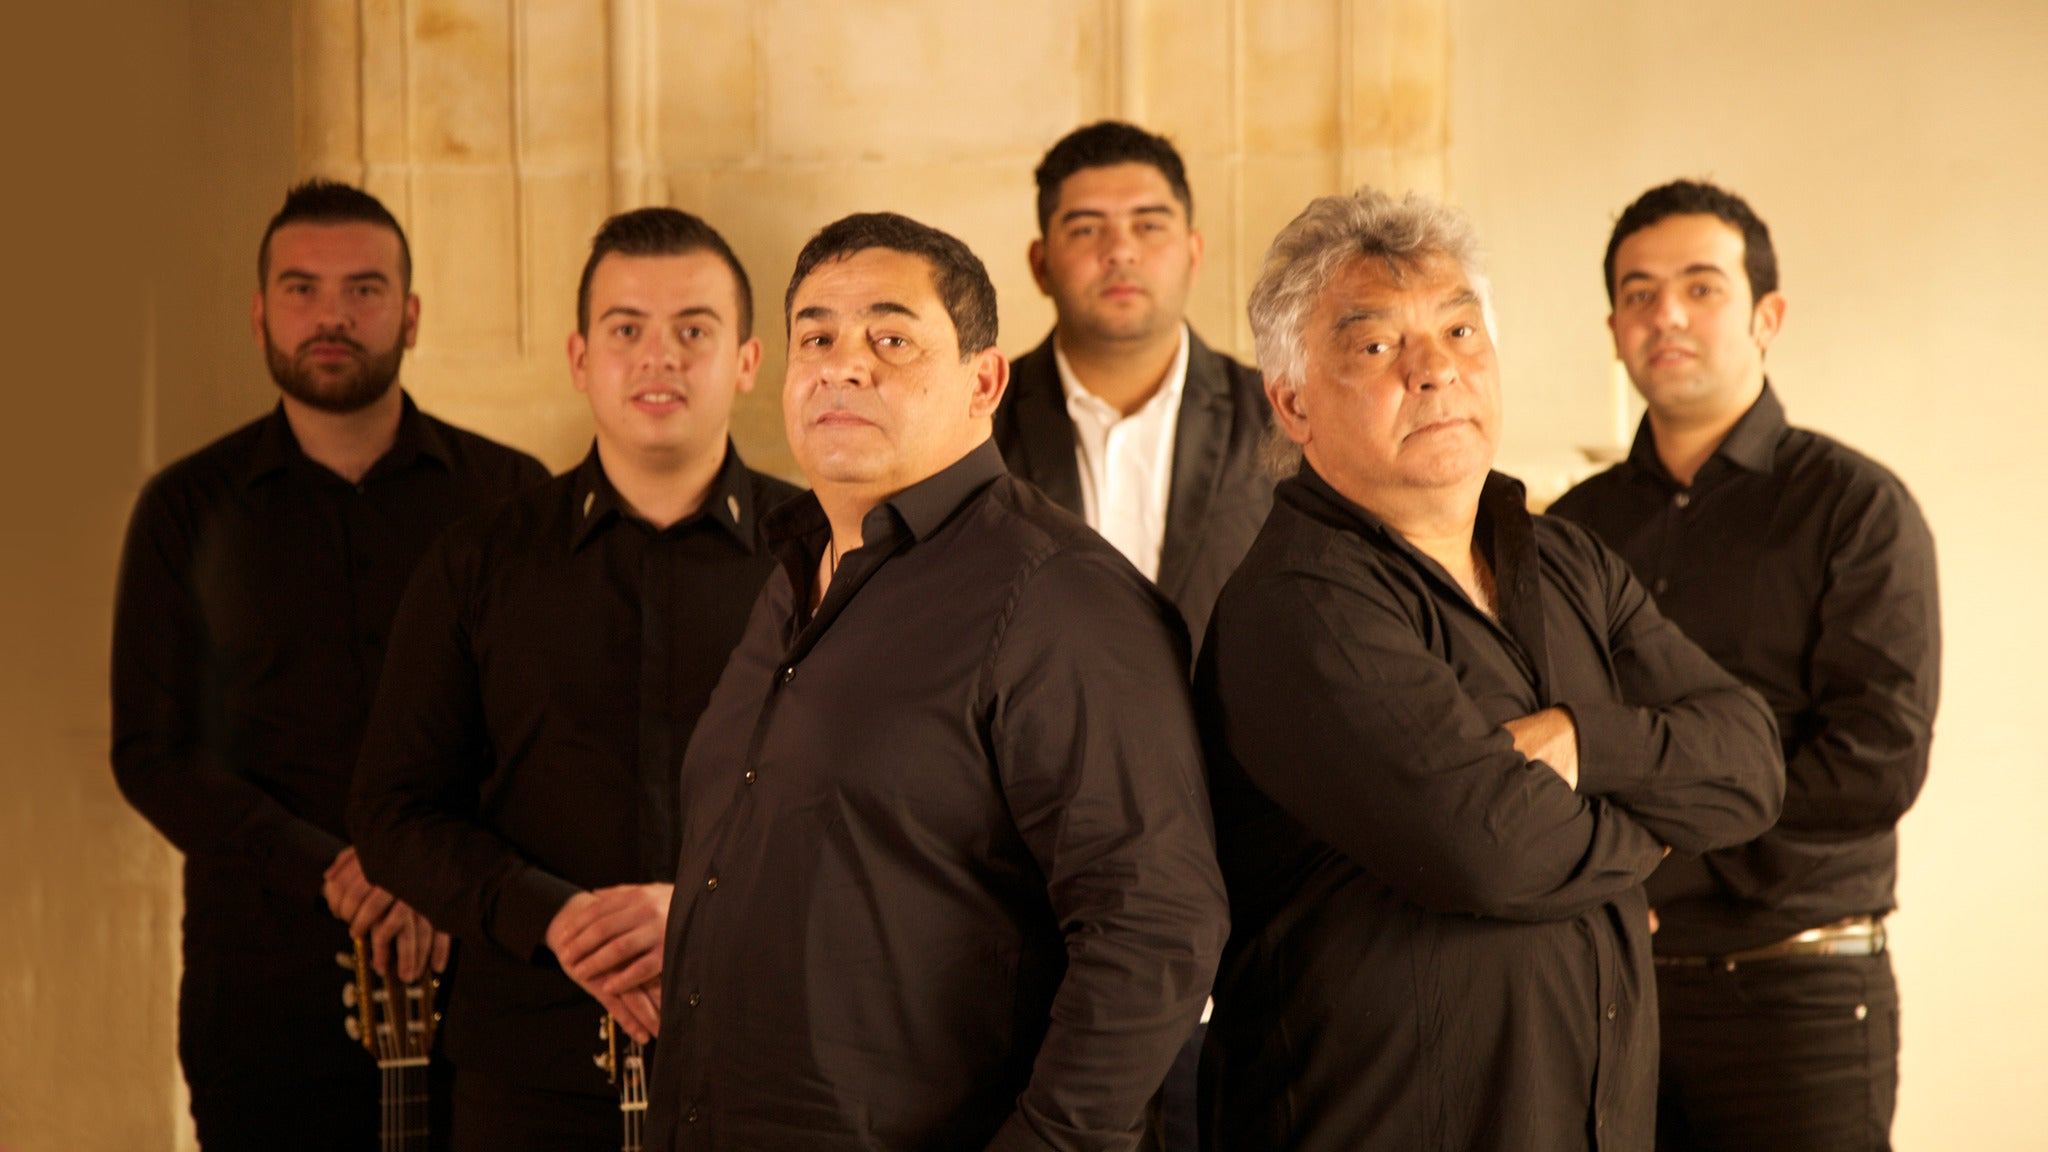 Gipsy Kings at Wolf Creek Amphitheater